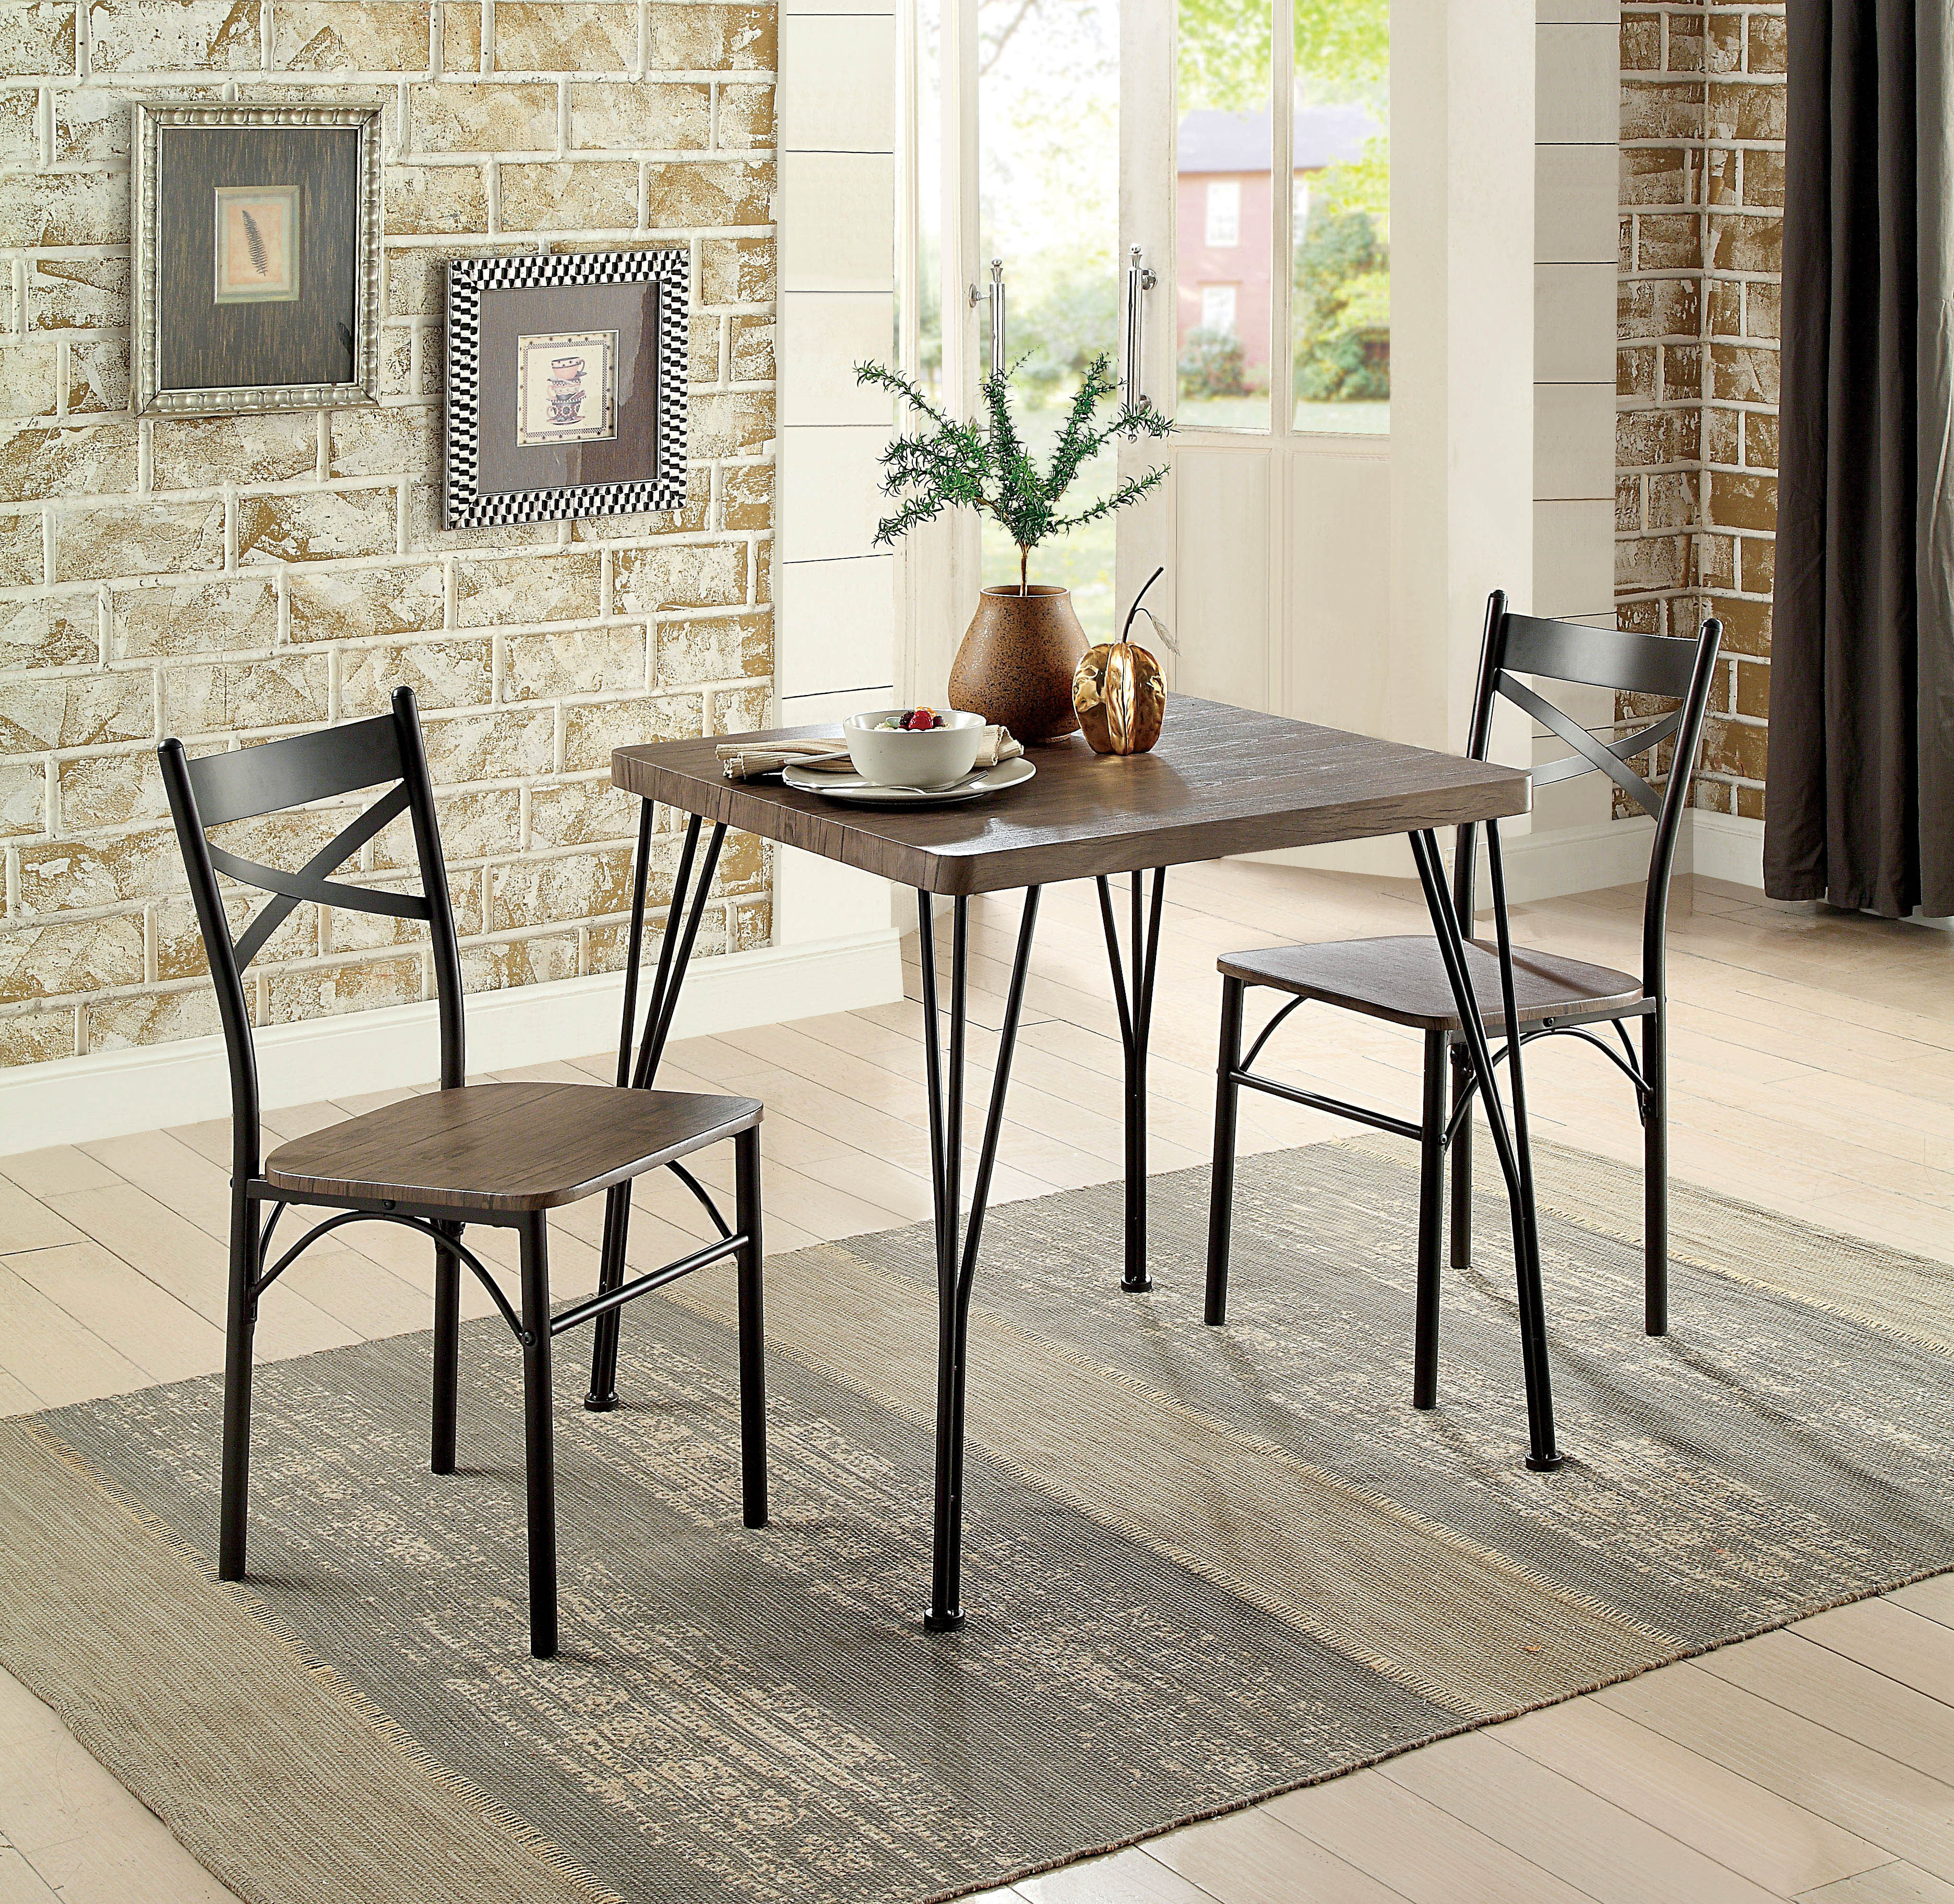 Kinsler 3 Piece Bistro Sets Intended For Best And Newest Guertin 3 Piece Dining Set (Gallery 7 of 20)